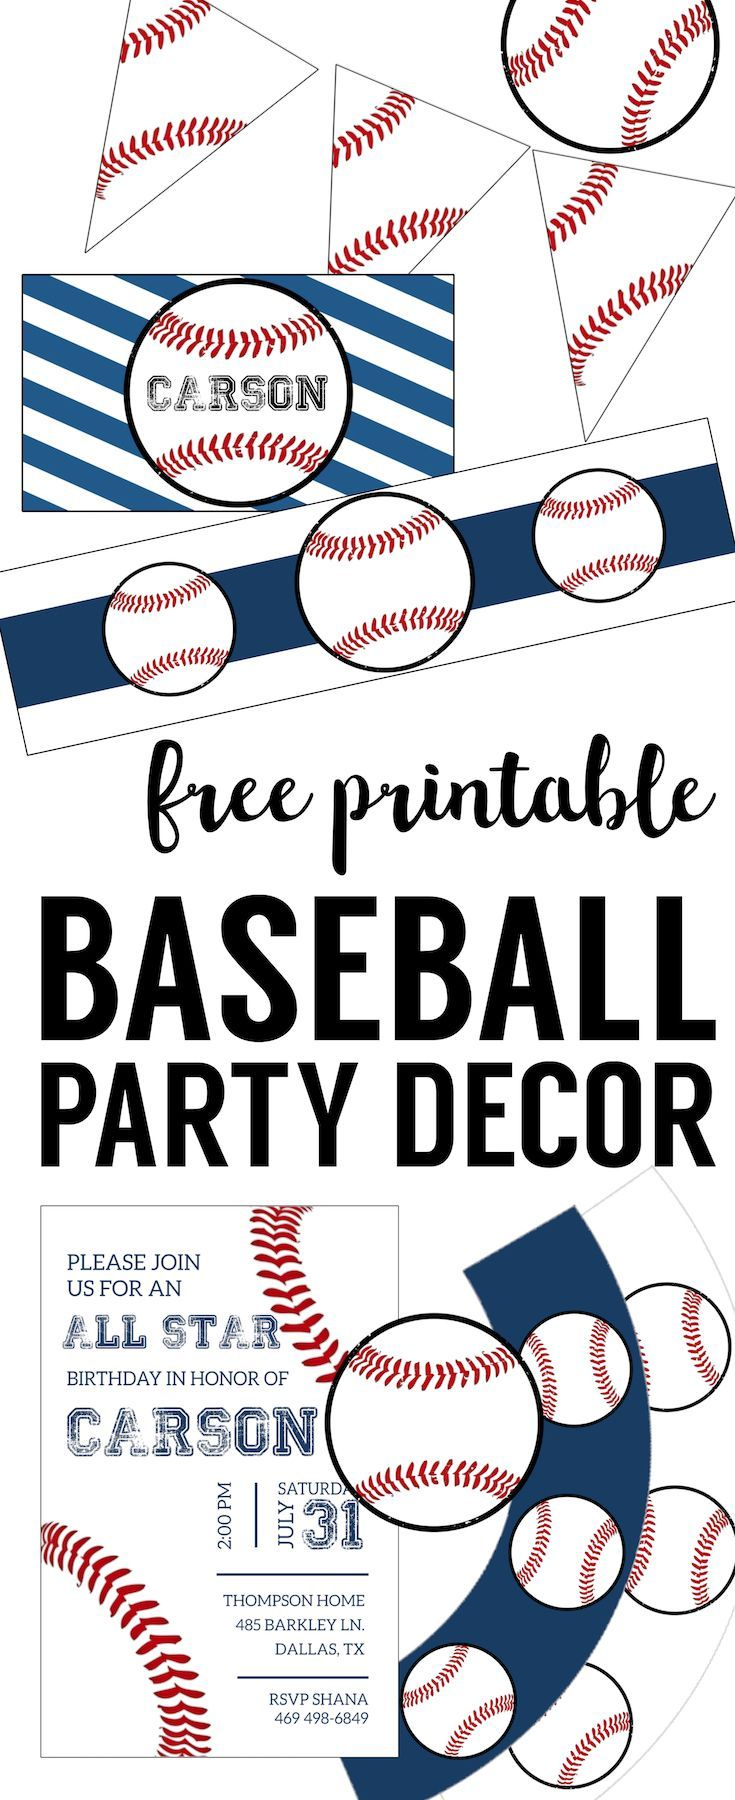 Free Baseball Printables {Baseball Party Decorations}. Baseball birthday party decorations, boy baby shower decor, or mlb world series, or baseball or softball team party DIY decor. #BaseballBoys